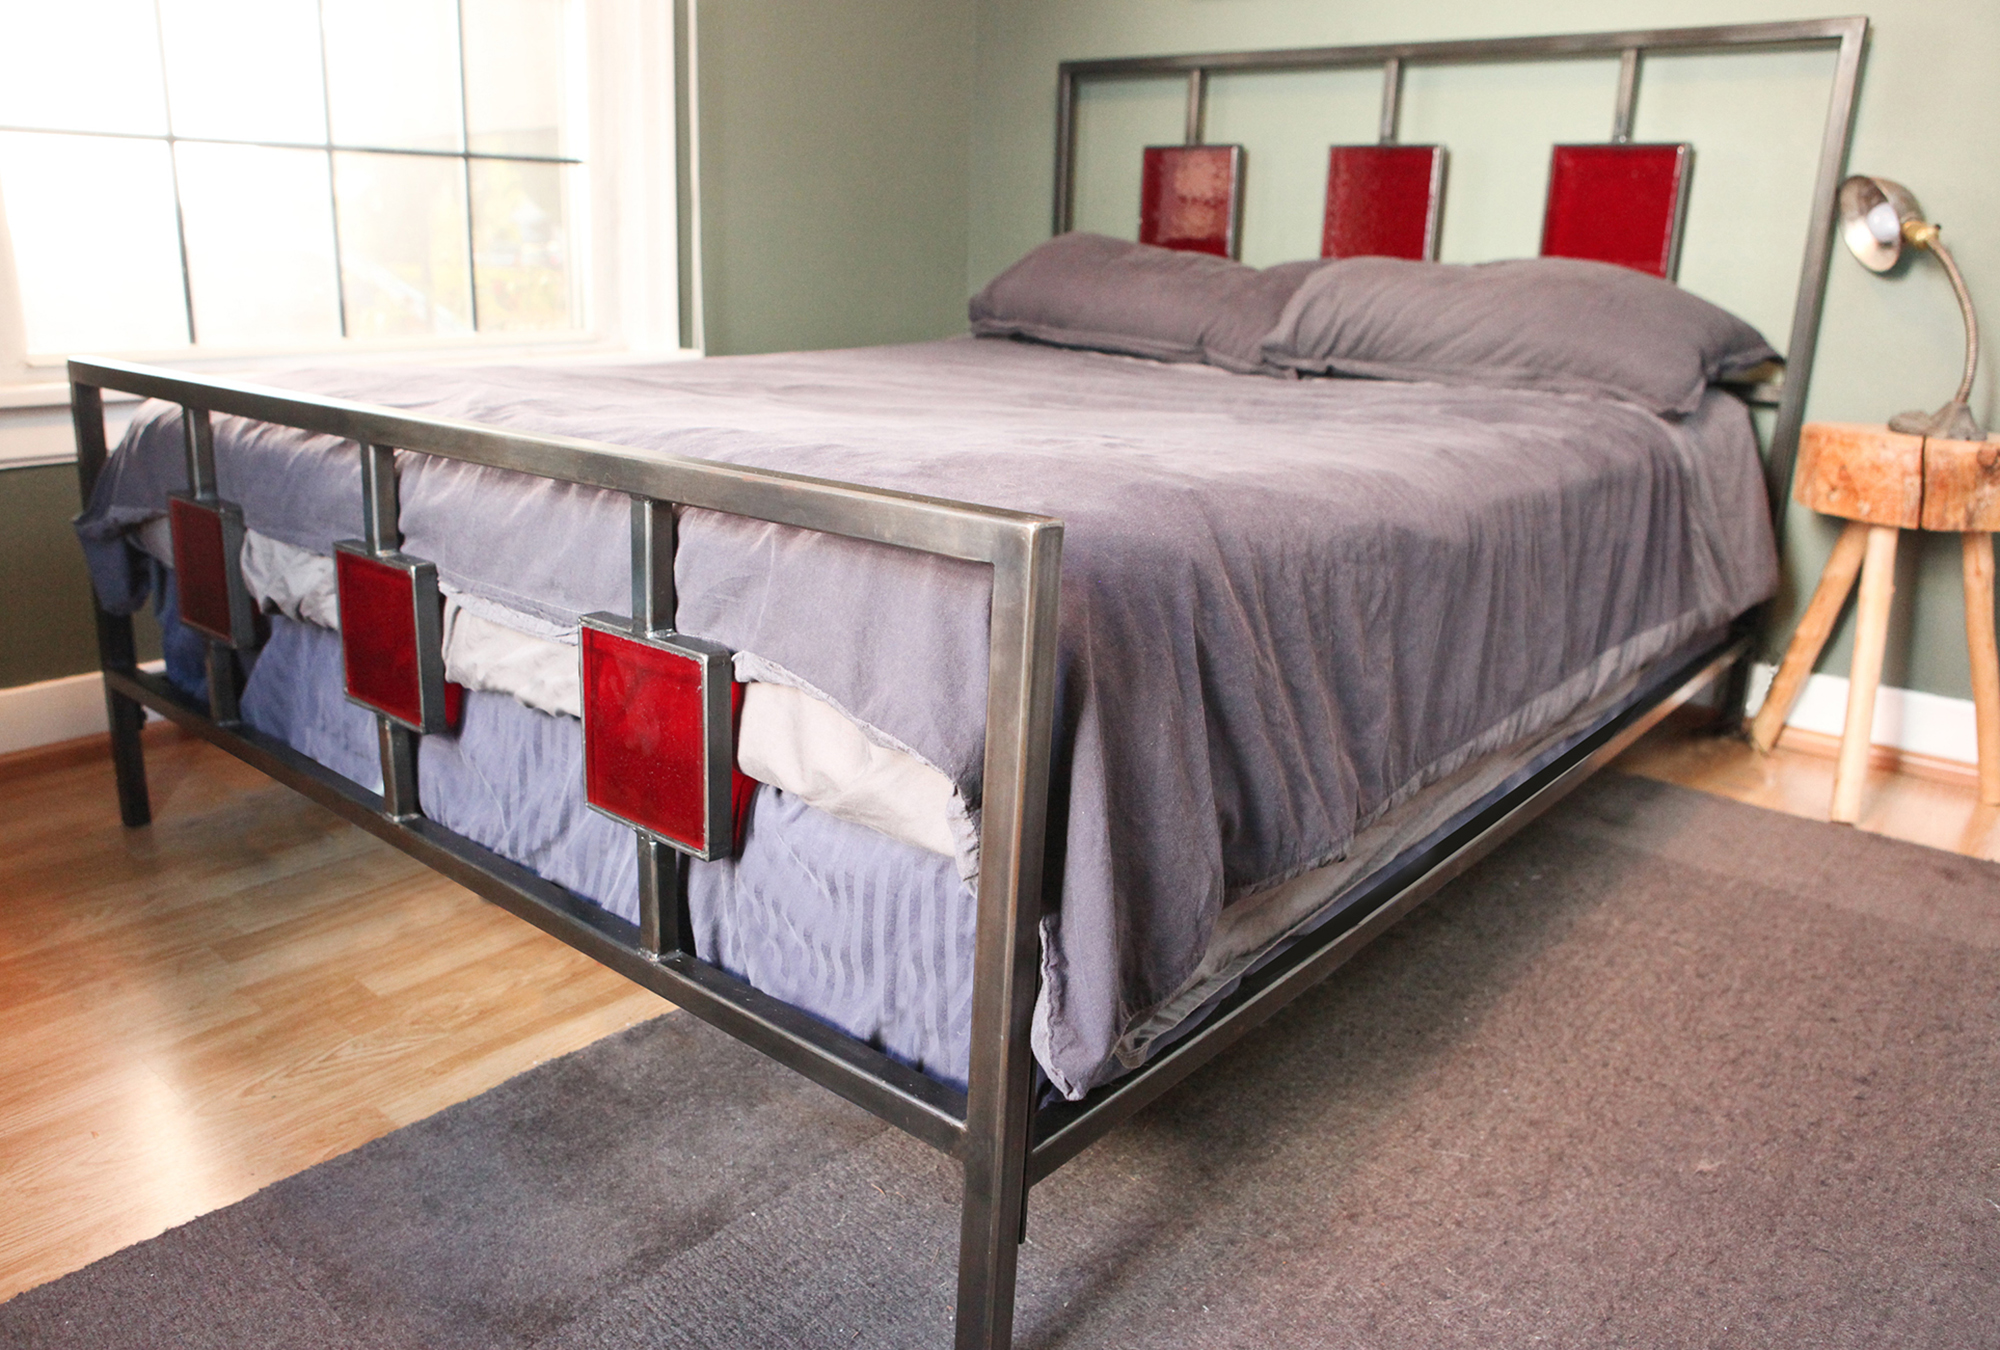 saint furniture handmade glass headboard bed